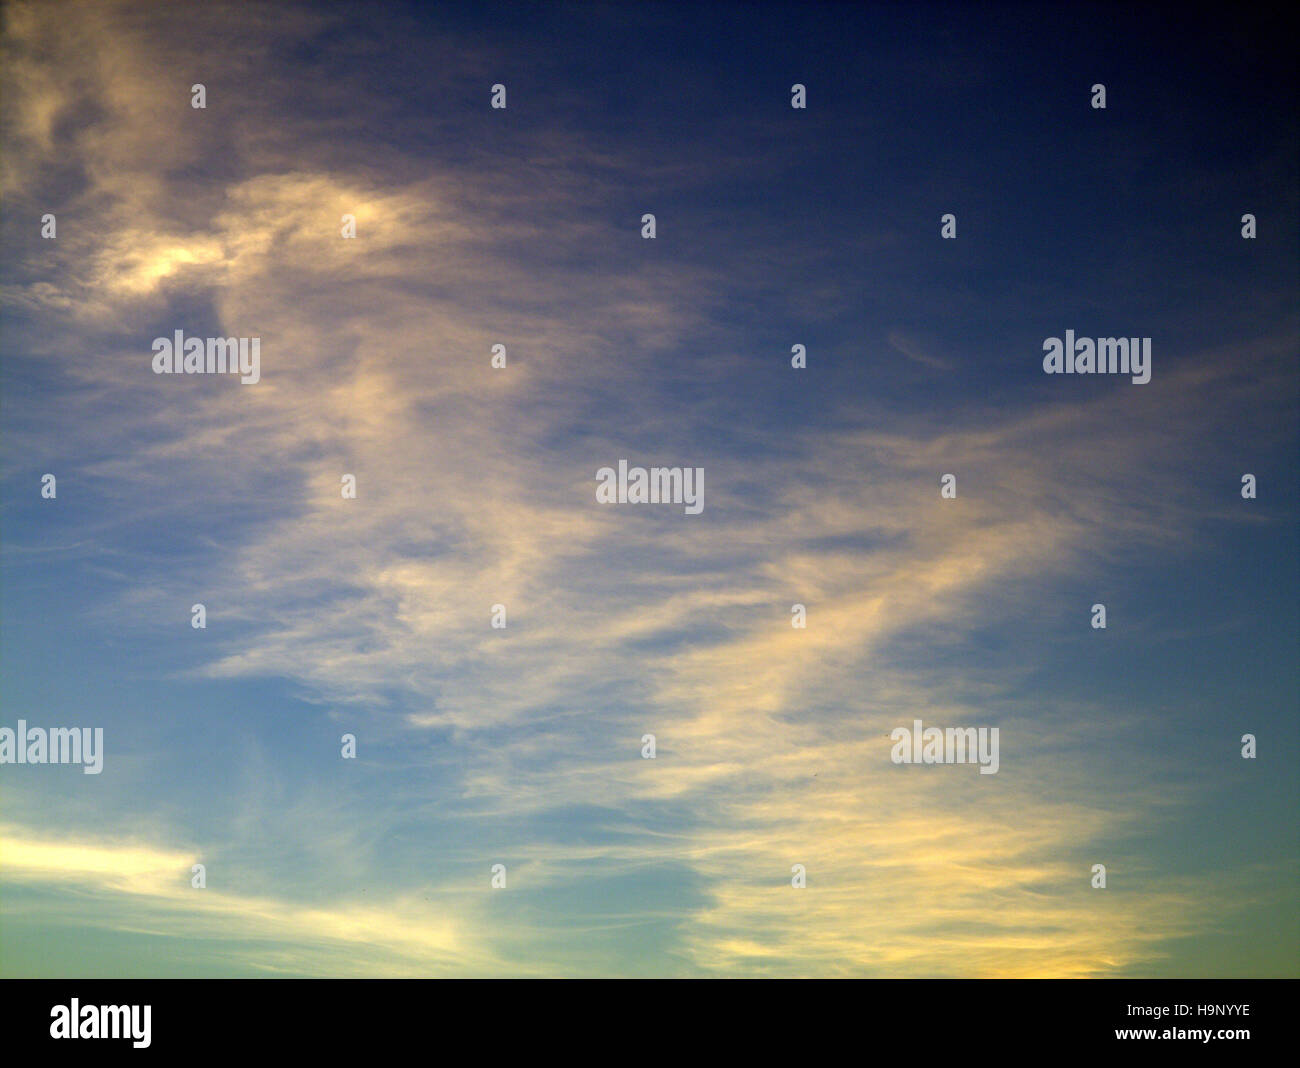 Abstract blue ciel nuage bleu fond portrait dessiné Photo Stock